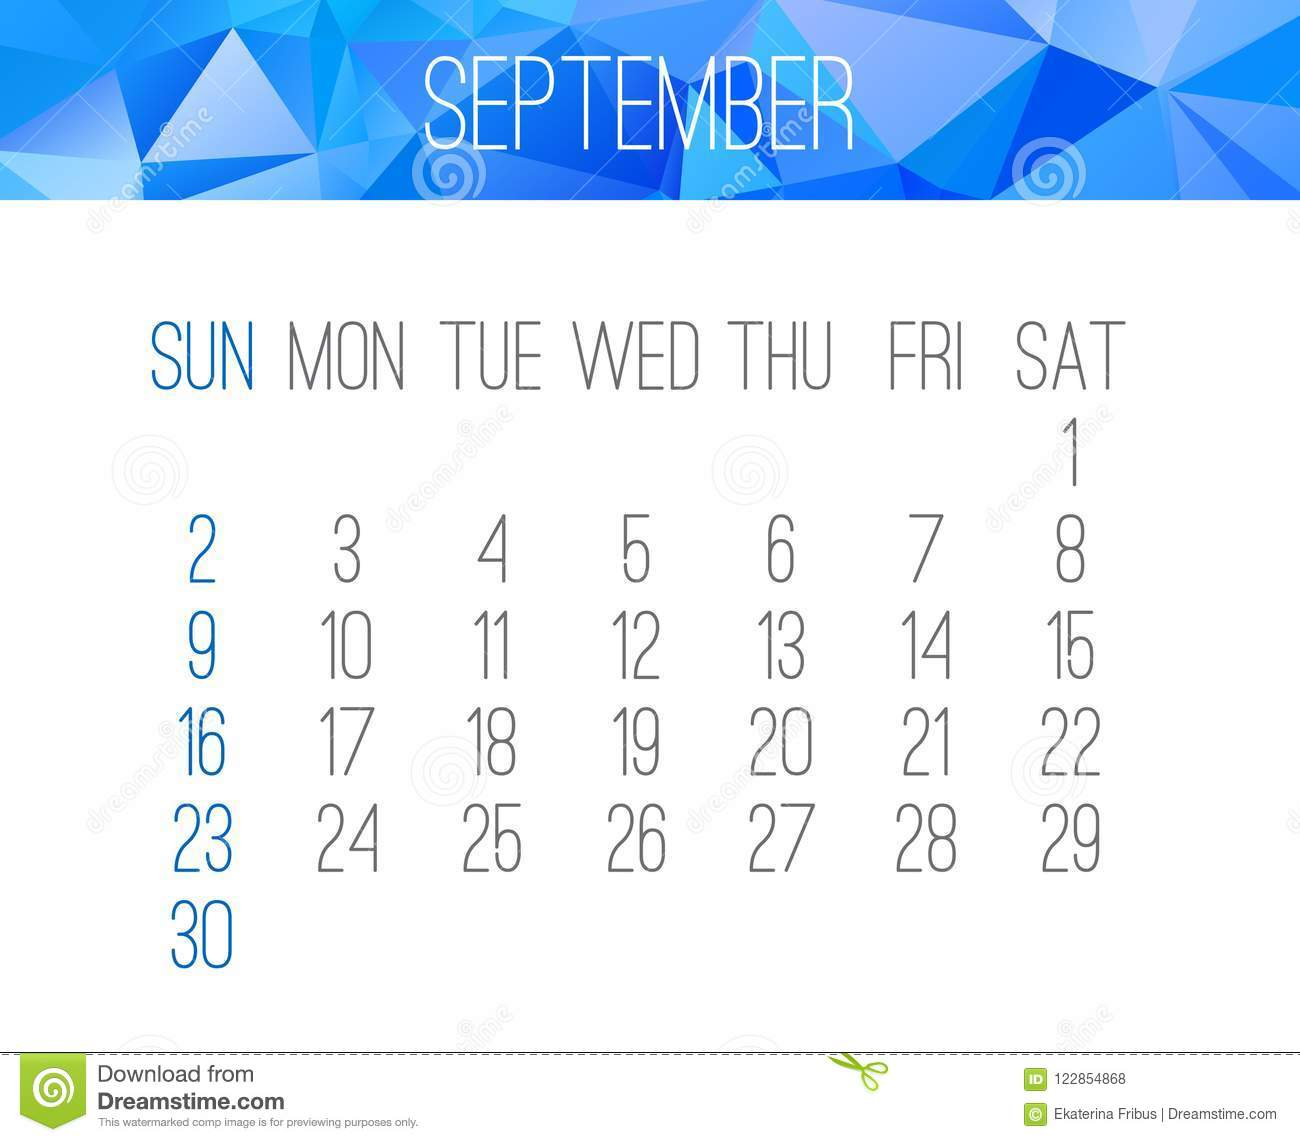 september year 2018 vector calendar week starting from sunday contemporary low poly design in blue color